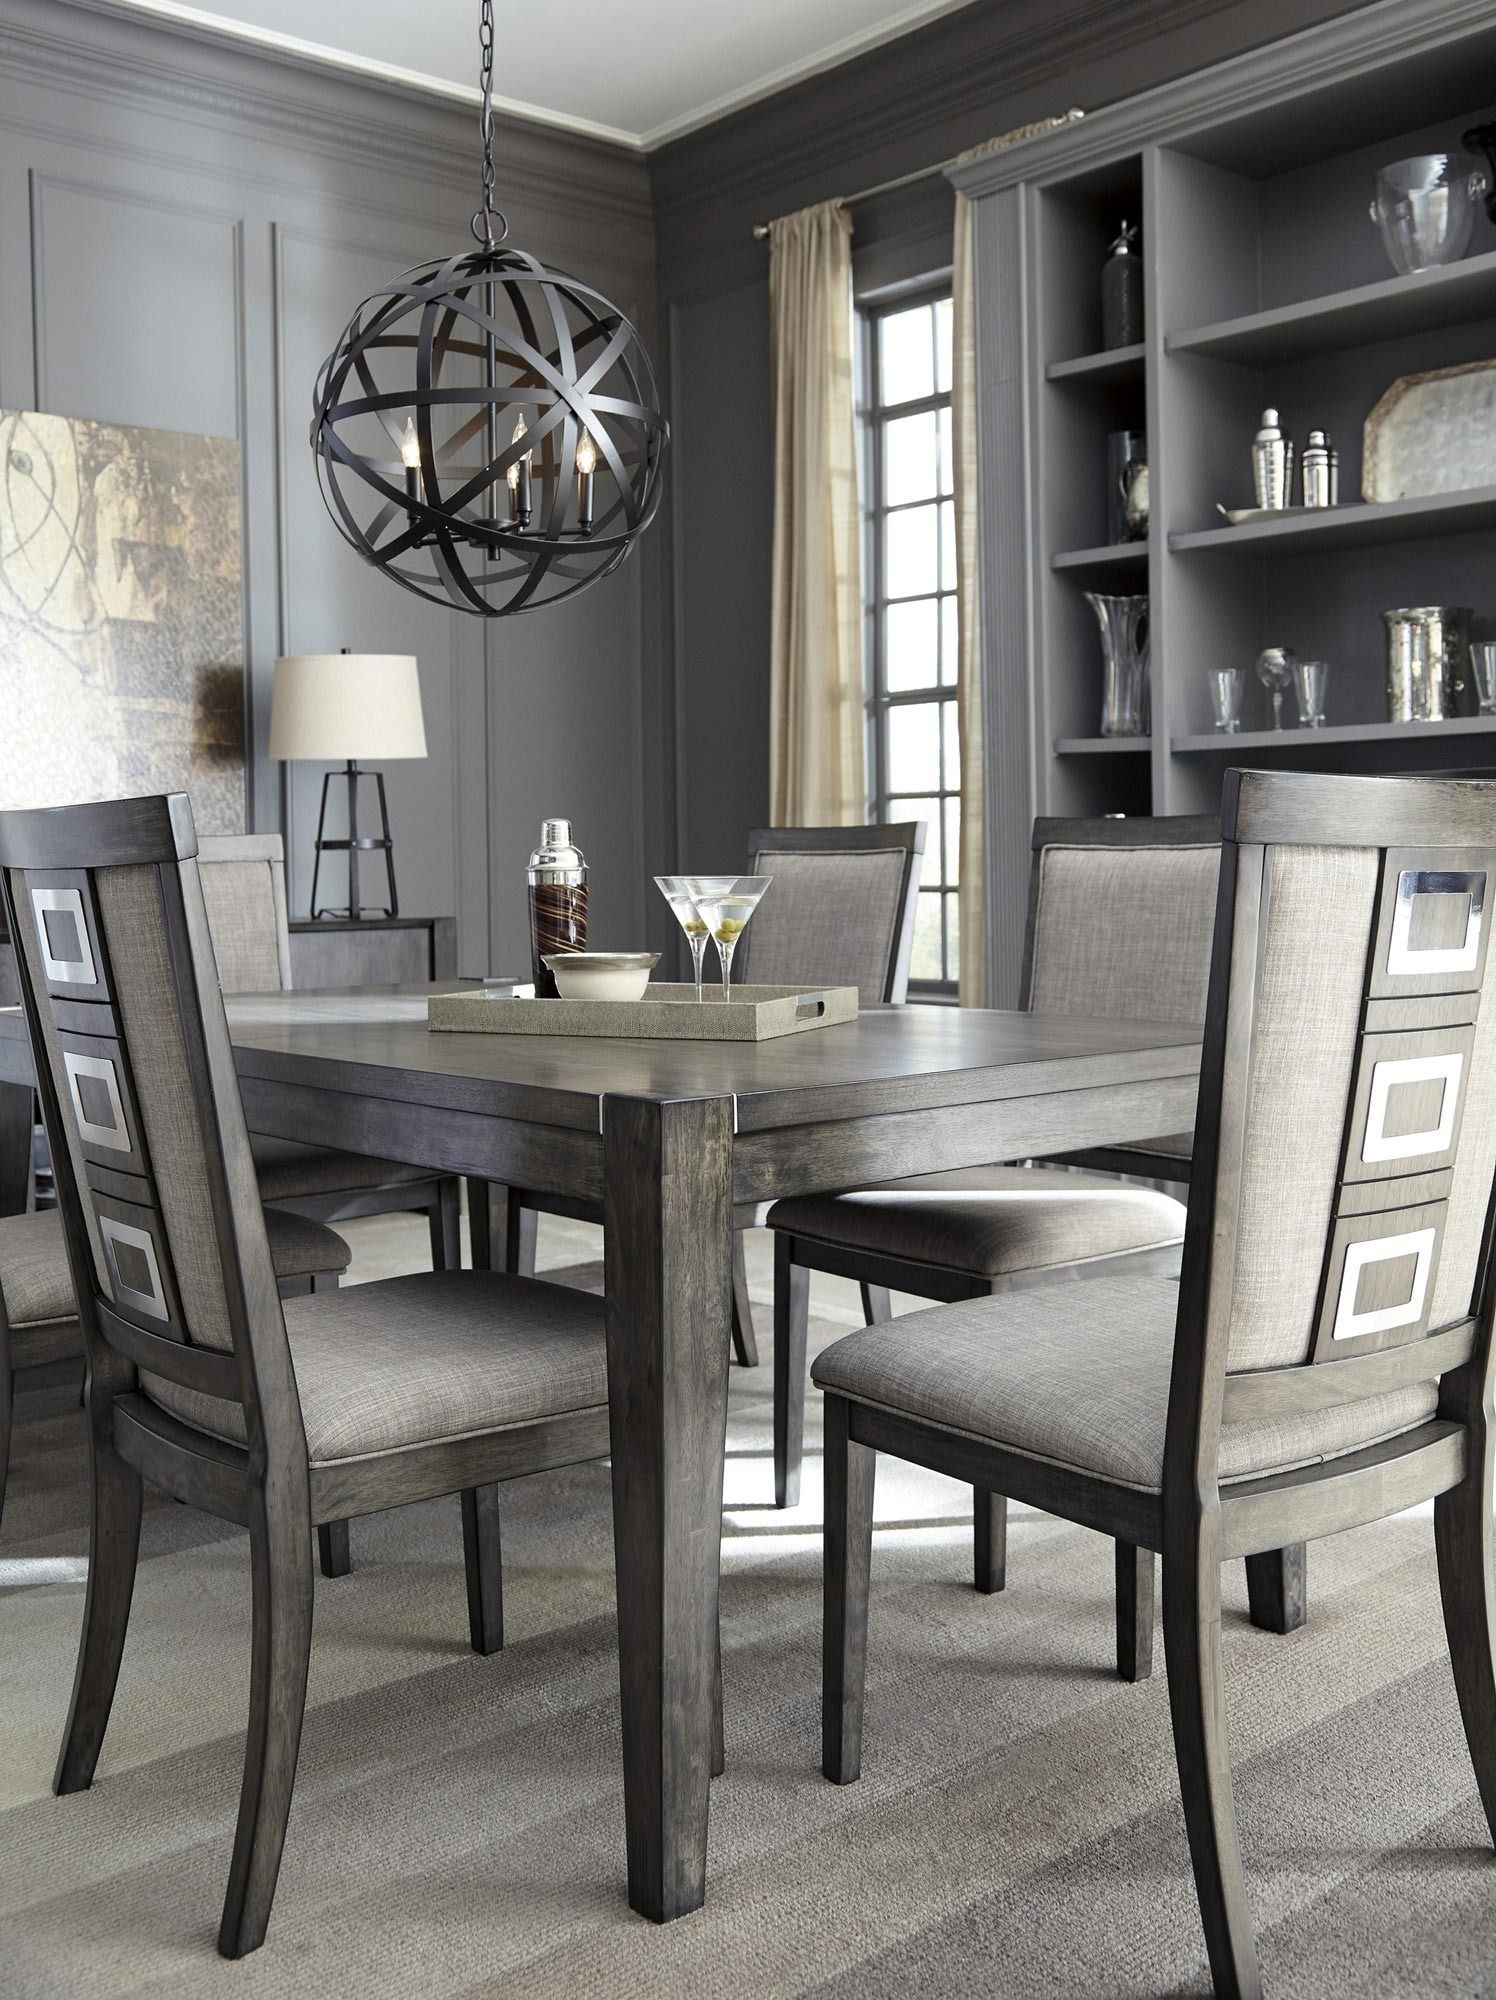 Dining Room Extension Table Chadoni Rectangular Dining Room Extension Table In Gray  Ashley